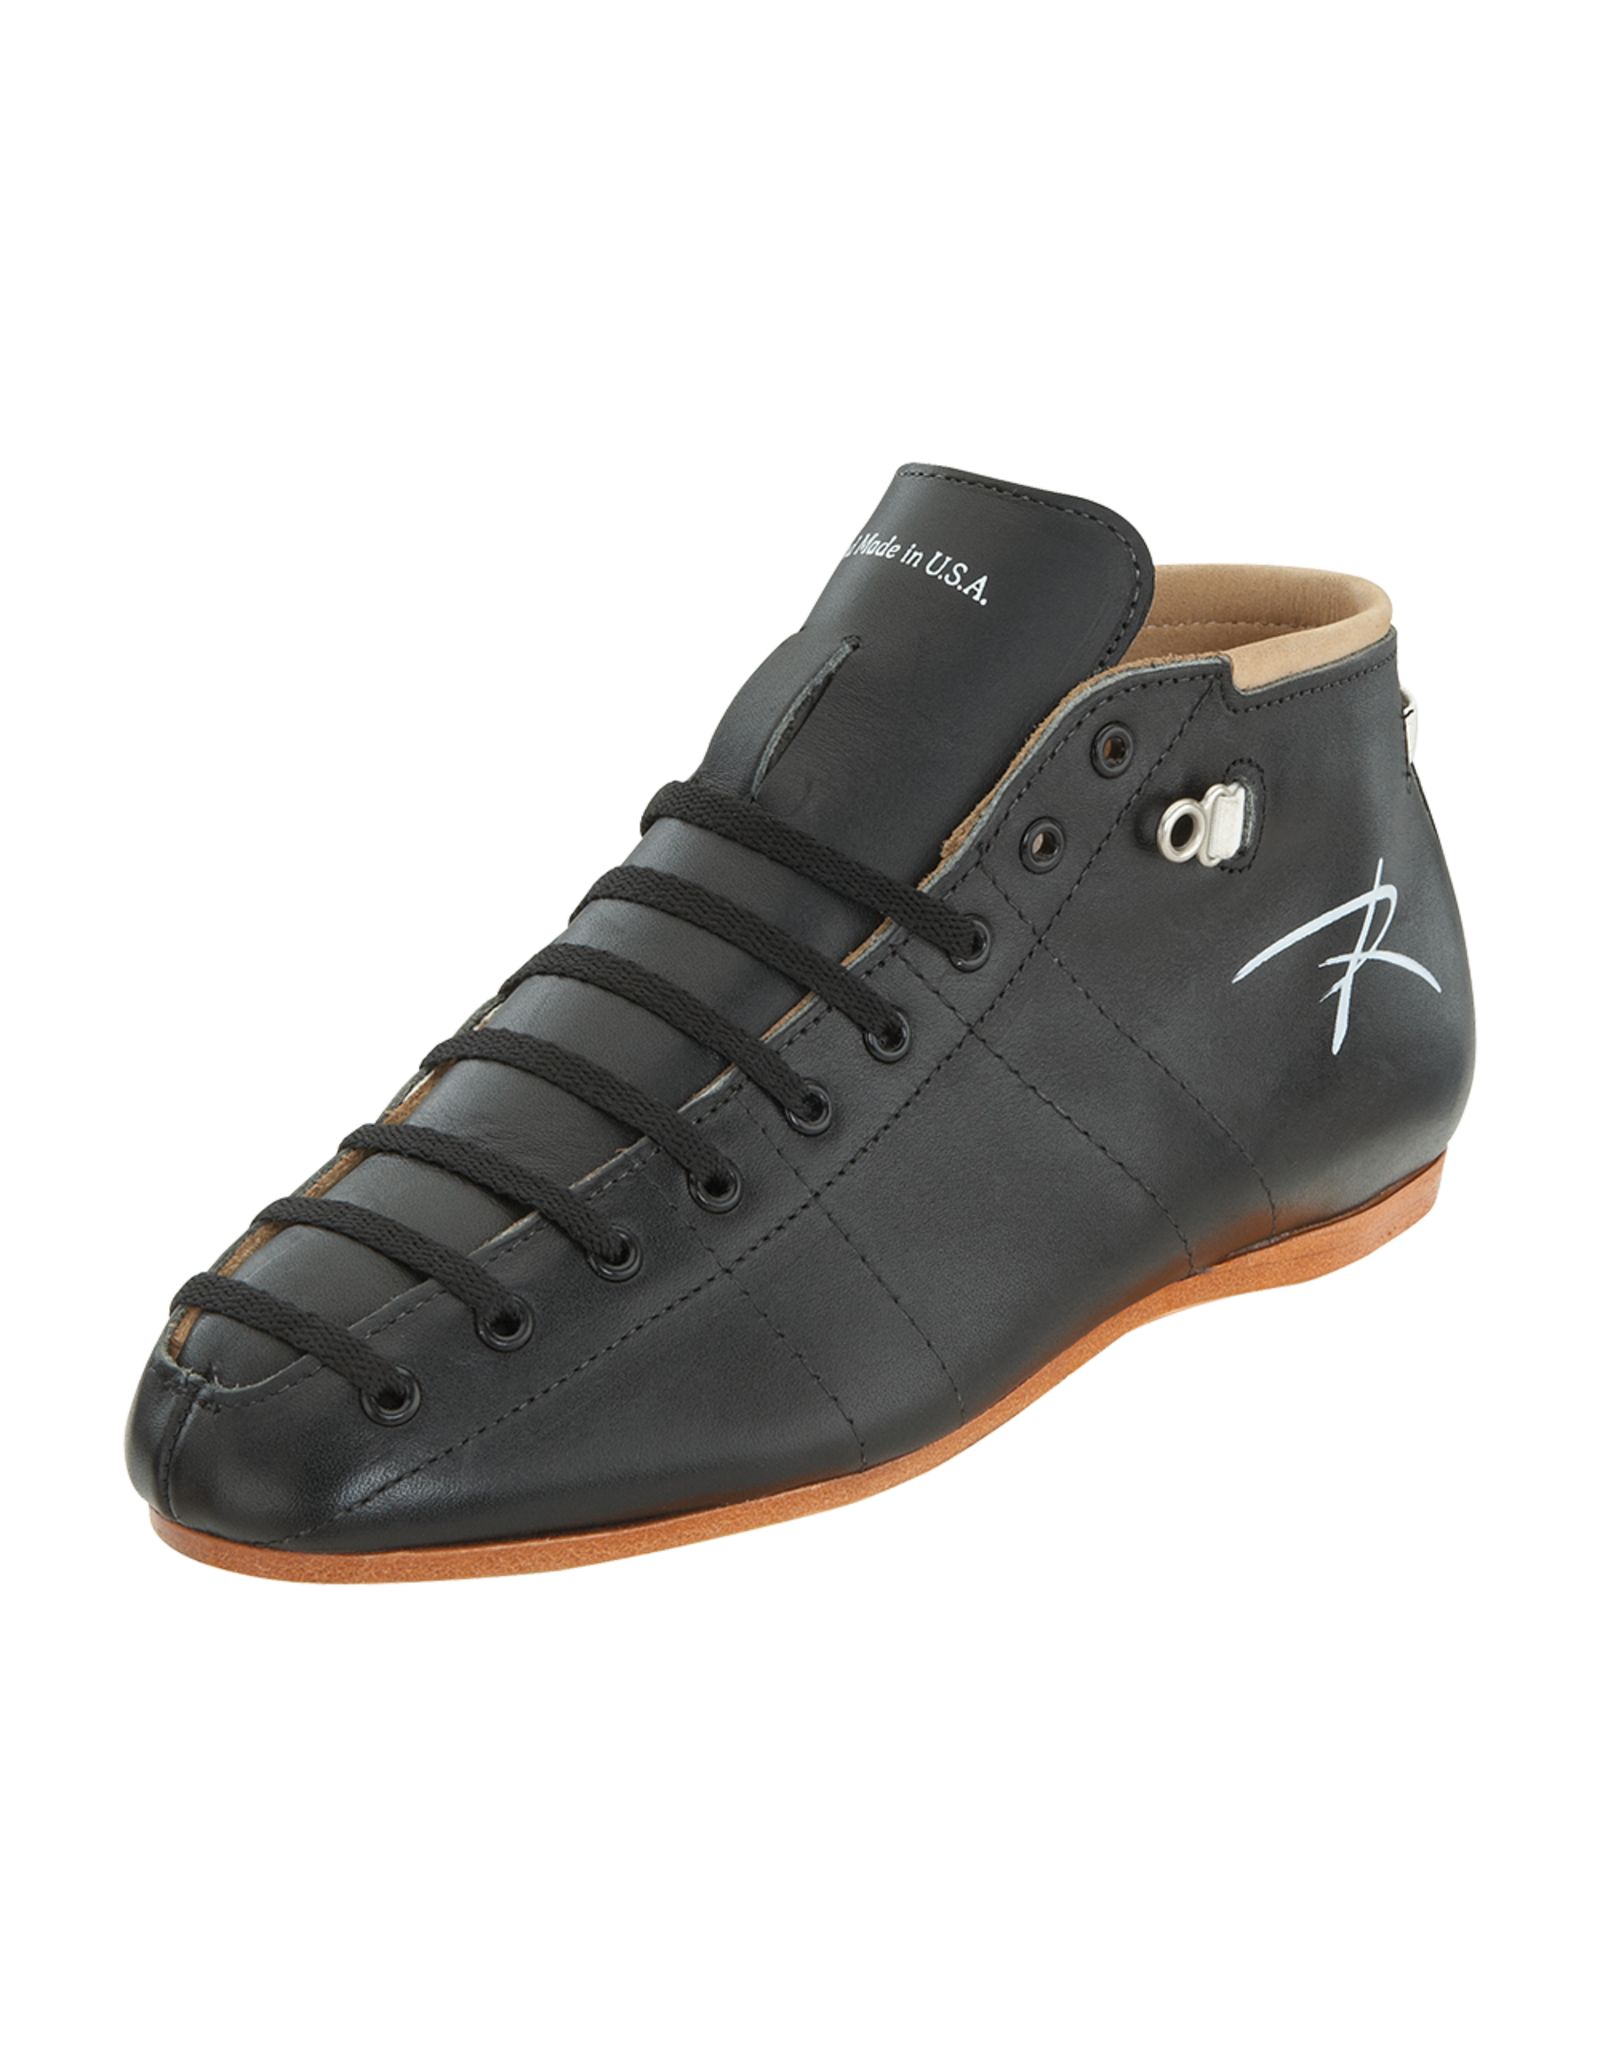 Riedell Riedell 495 Boot Black D/B